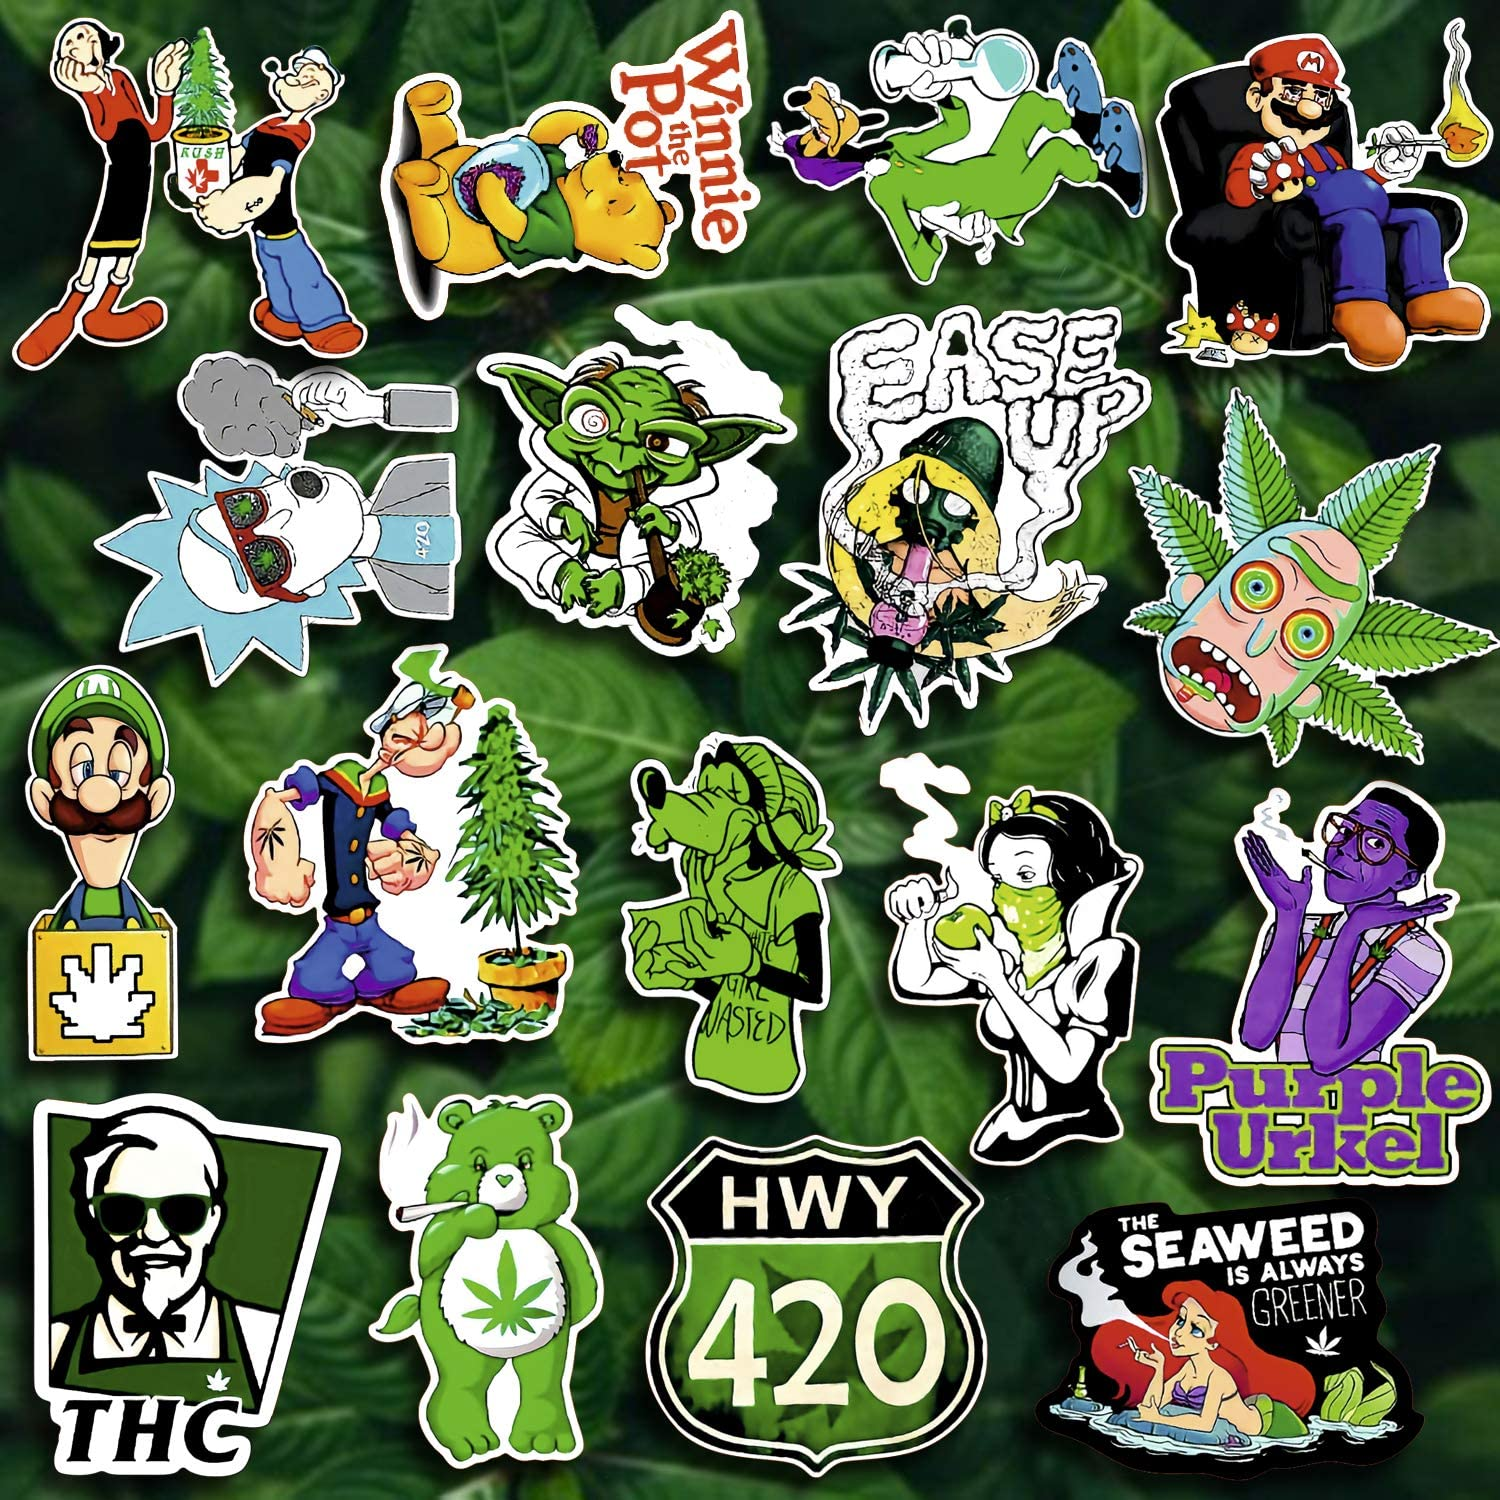 Weed Stickers Pack of 36 Vinyl Decals Trippy Stickers Pack for Water Bottles Laptop Phone Computer Car Luggage Cool Marijuana Stickers for Adults